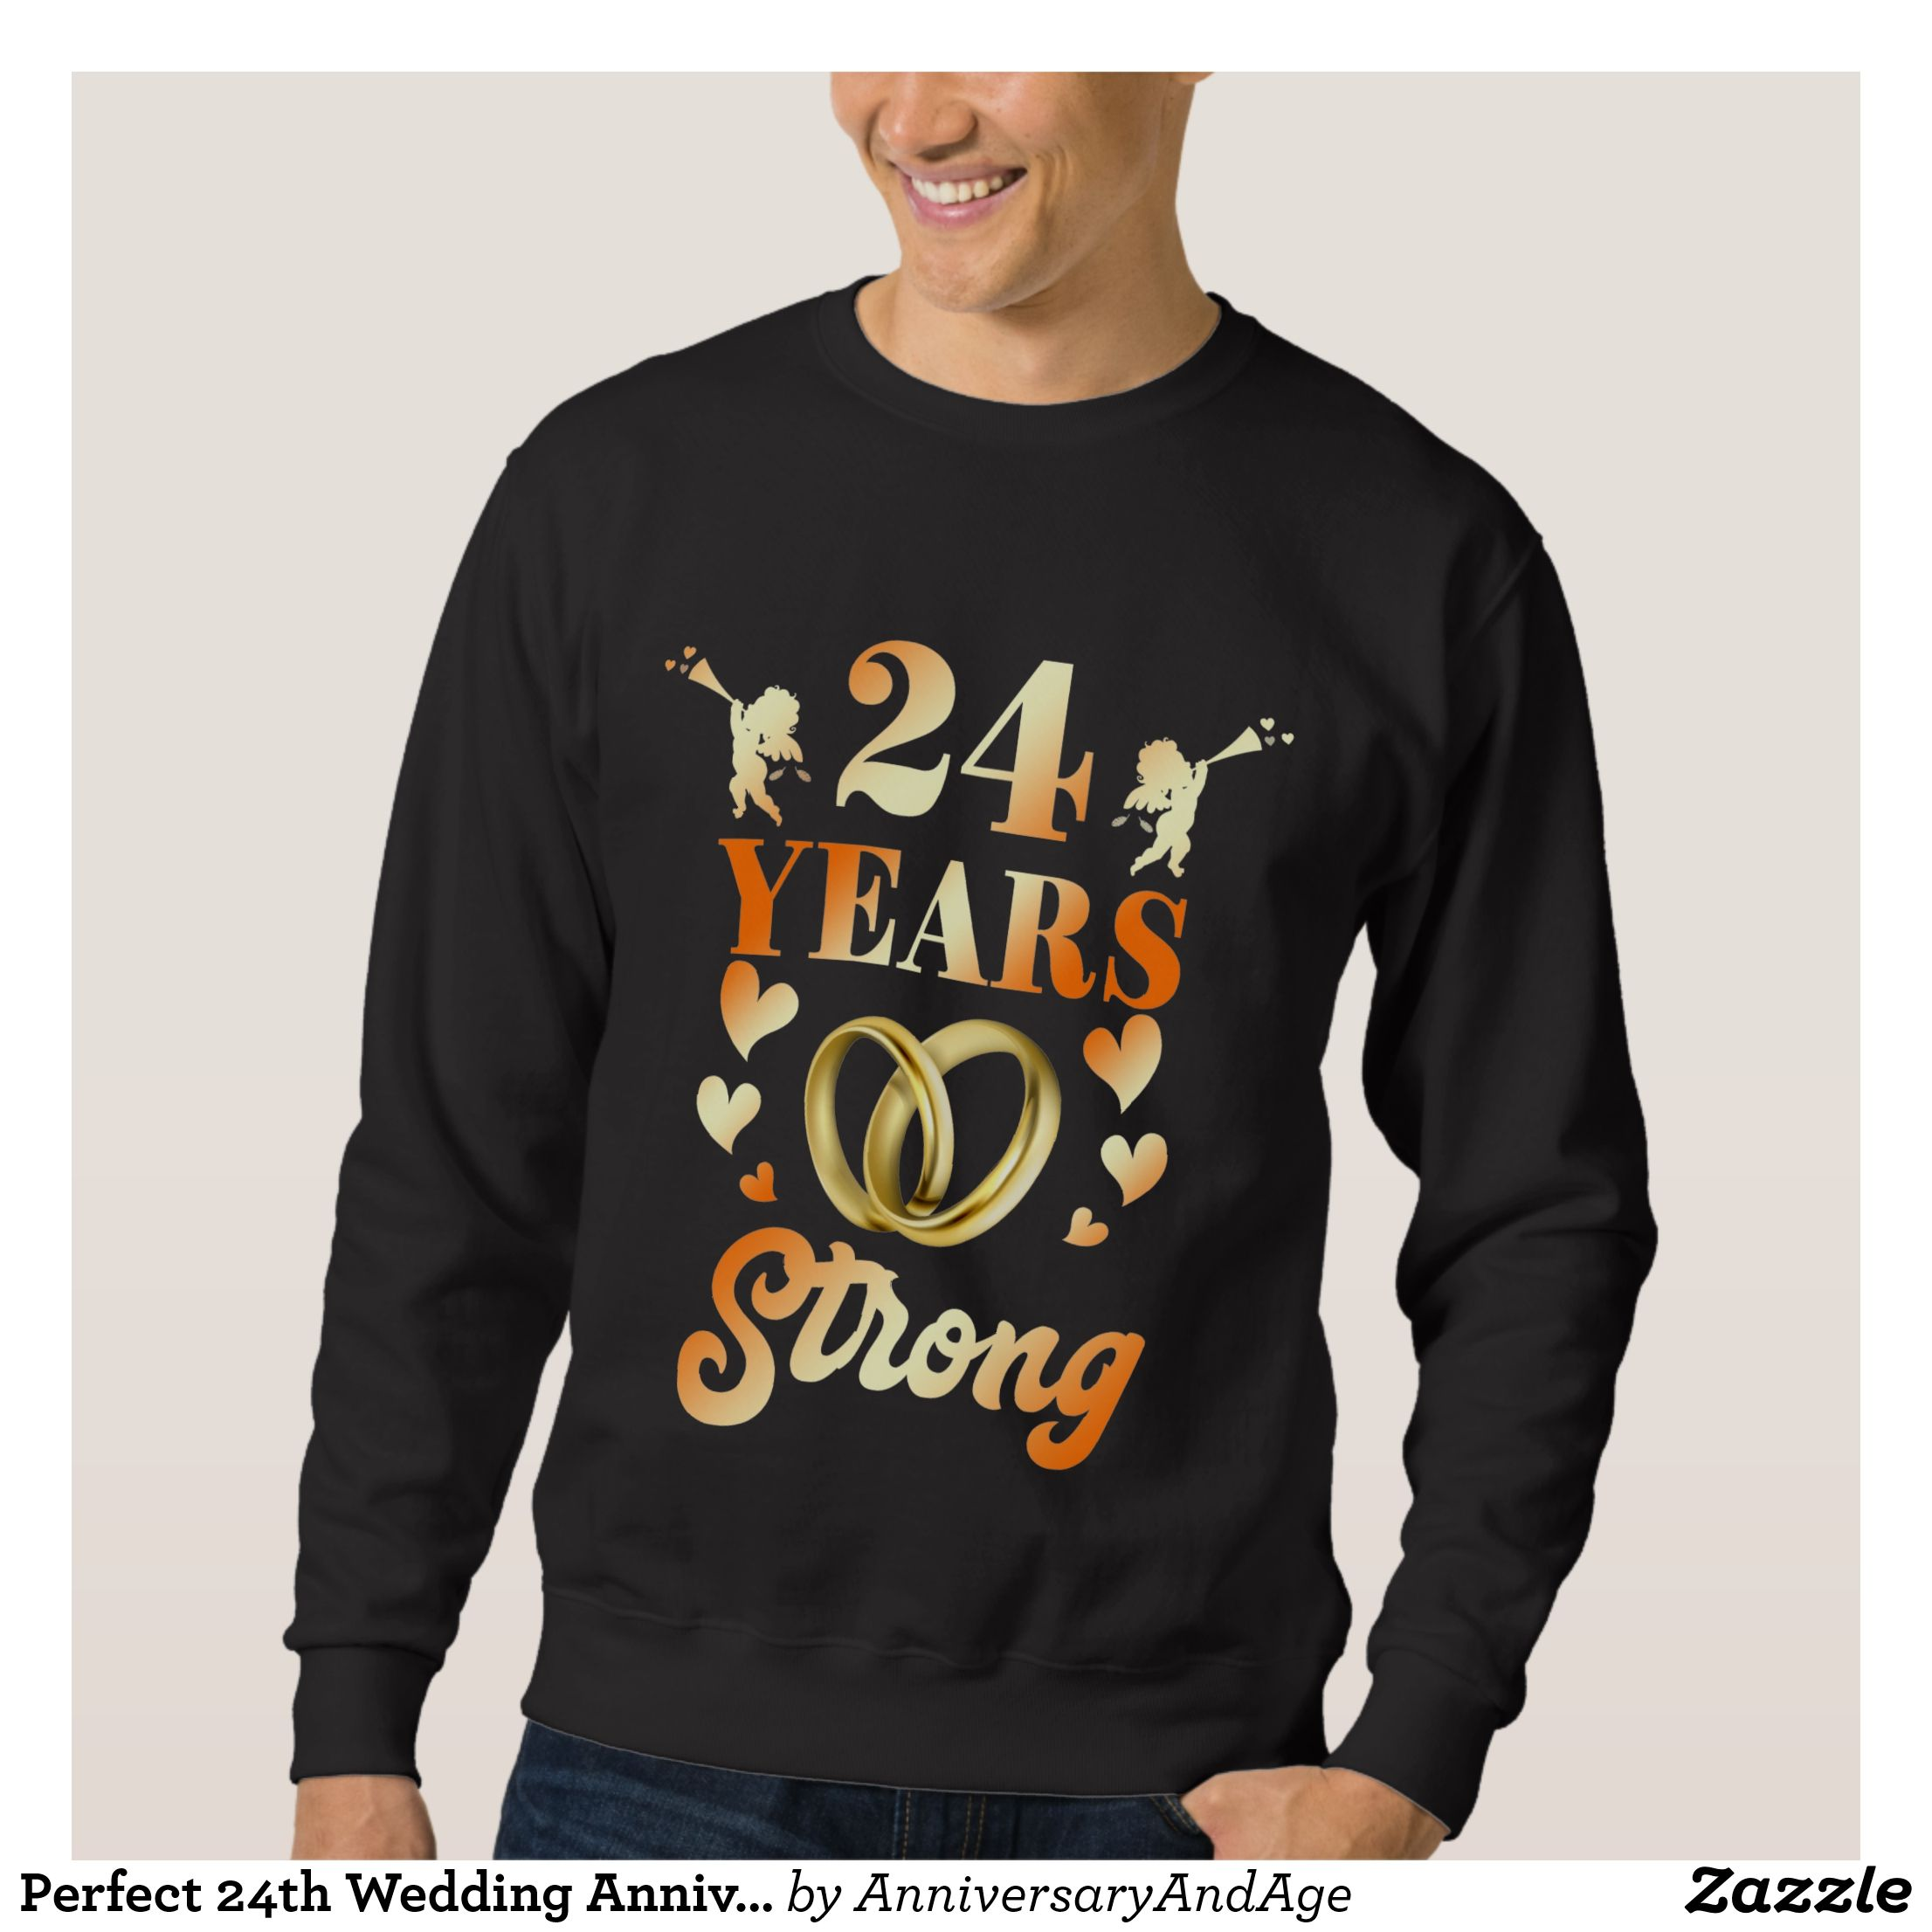 Perfect 24th Wedding Anniversary Gift For Couple